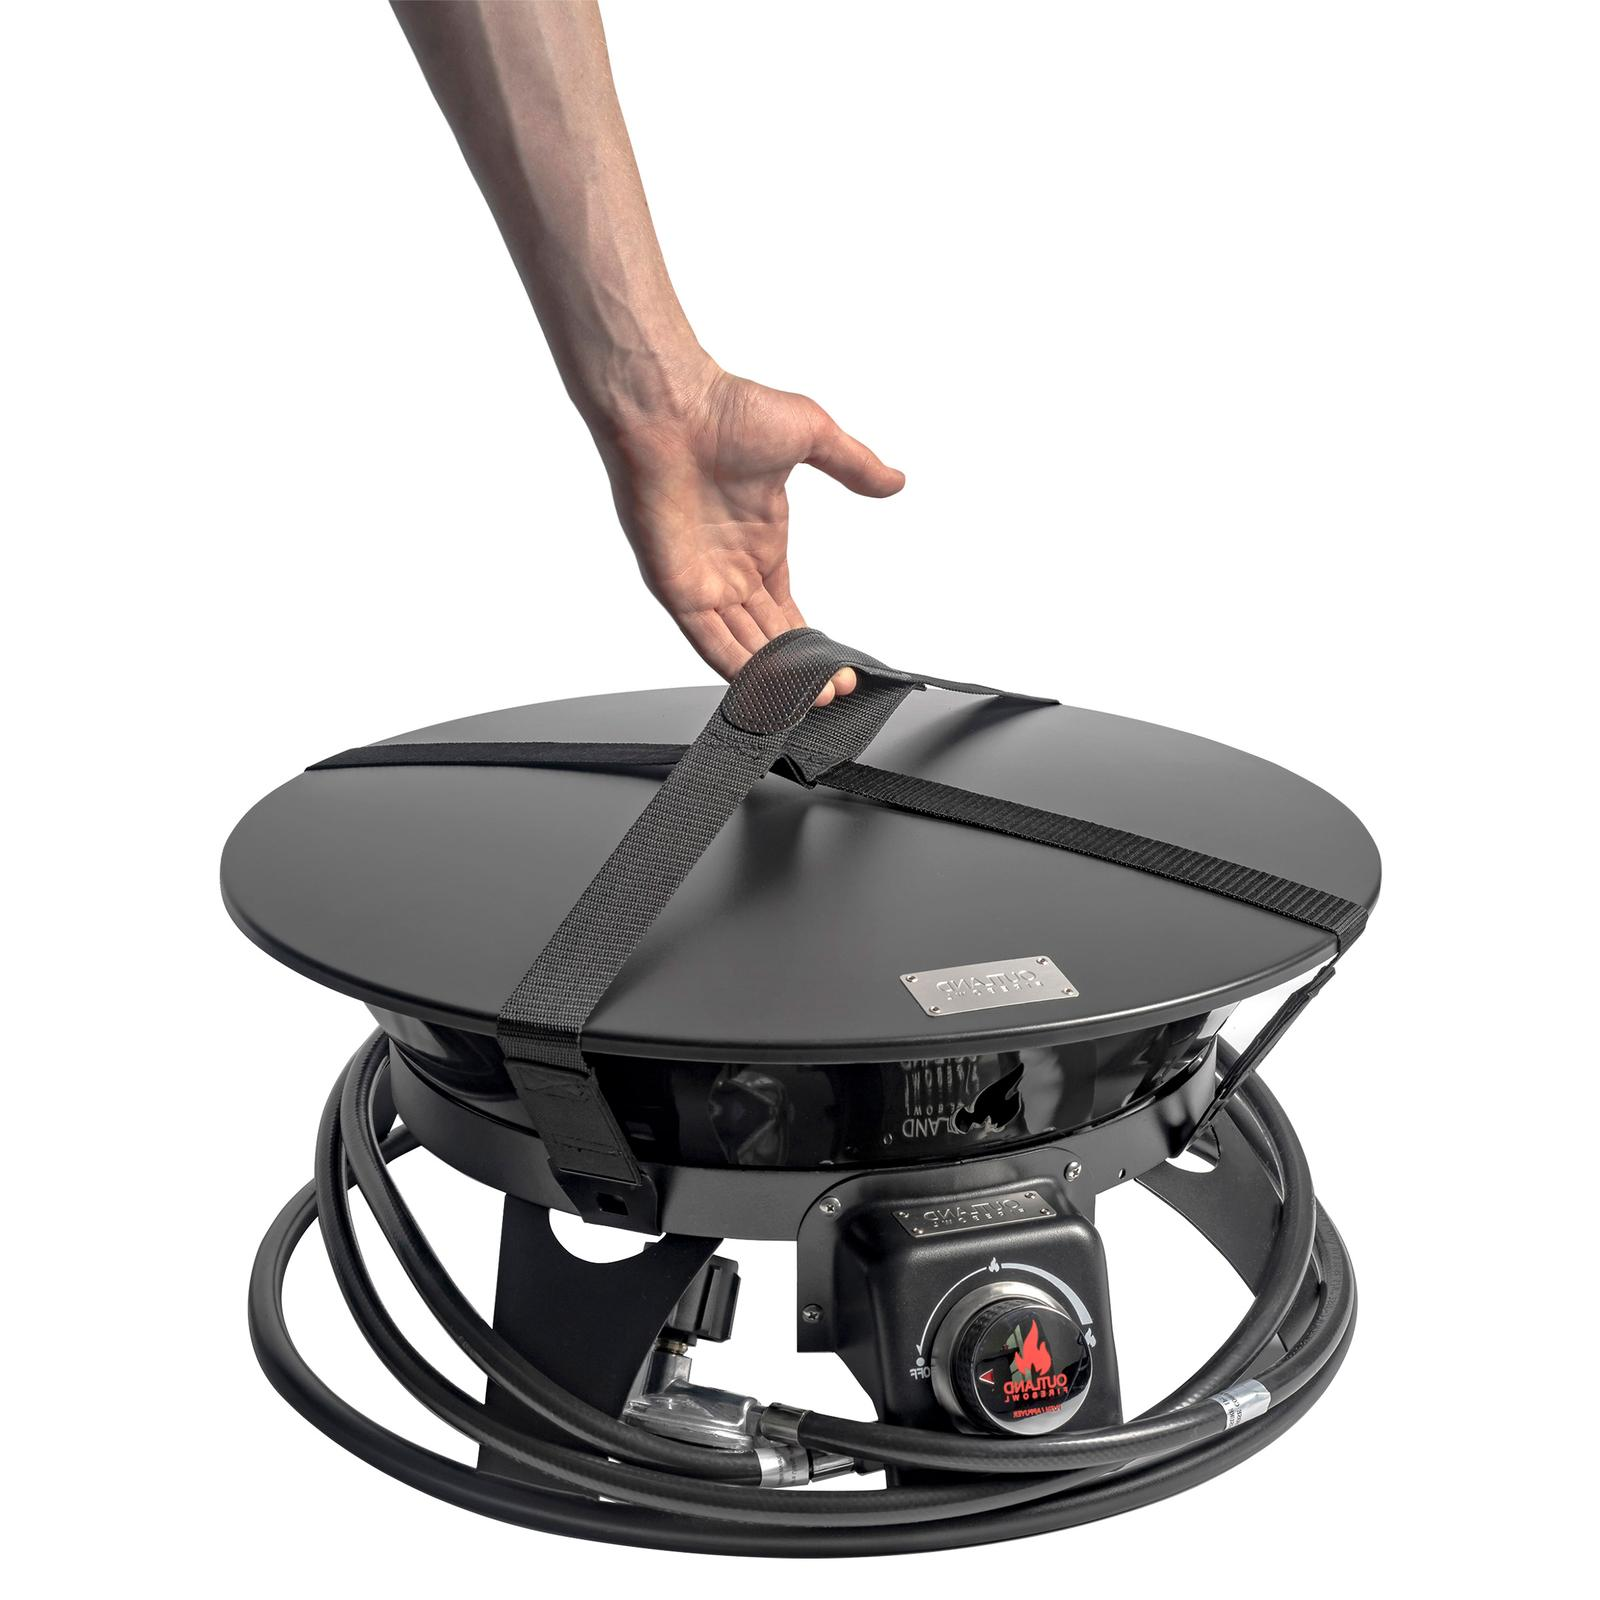 Outdoor Gas Outland Firebowl with Cover